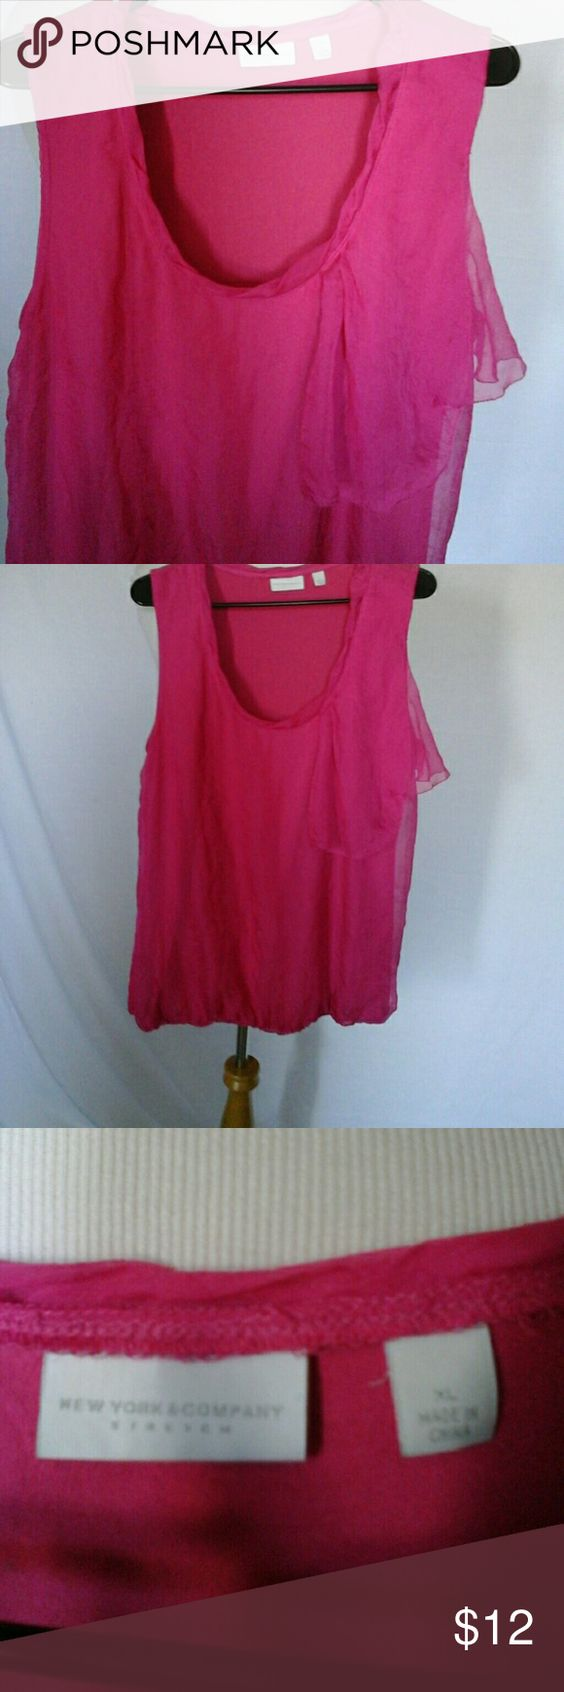 Gorgeous raspberry pink blouse stretch bottom Blouse has stretch also New York & Company Tops Blouses